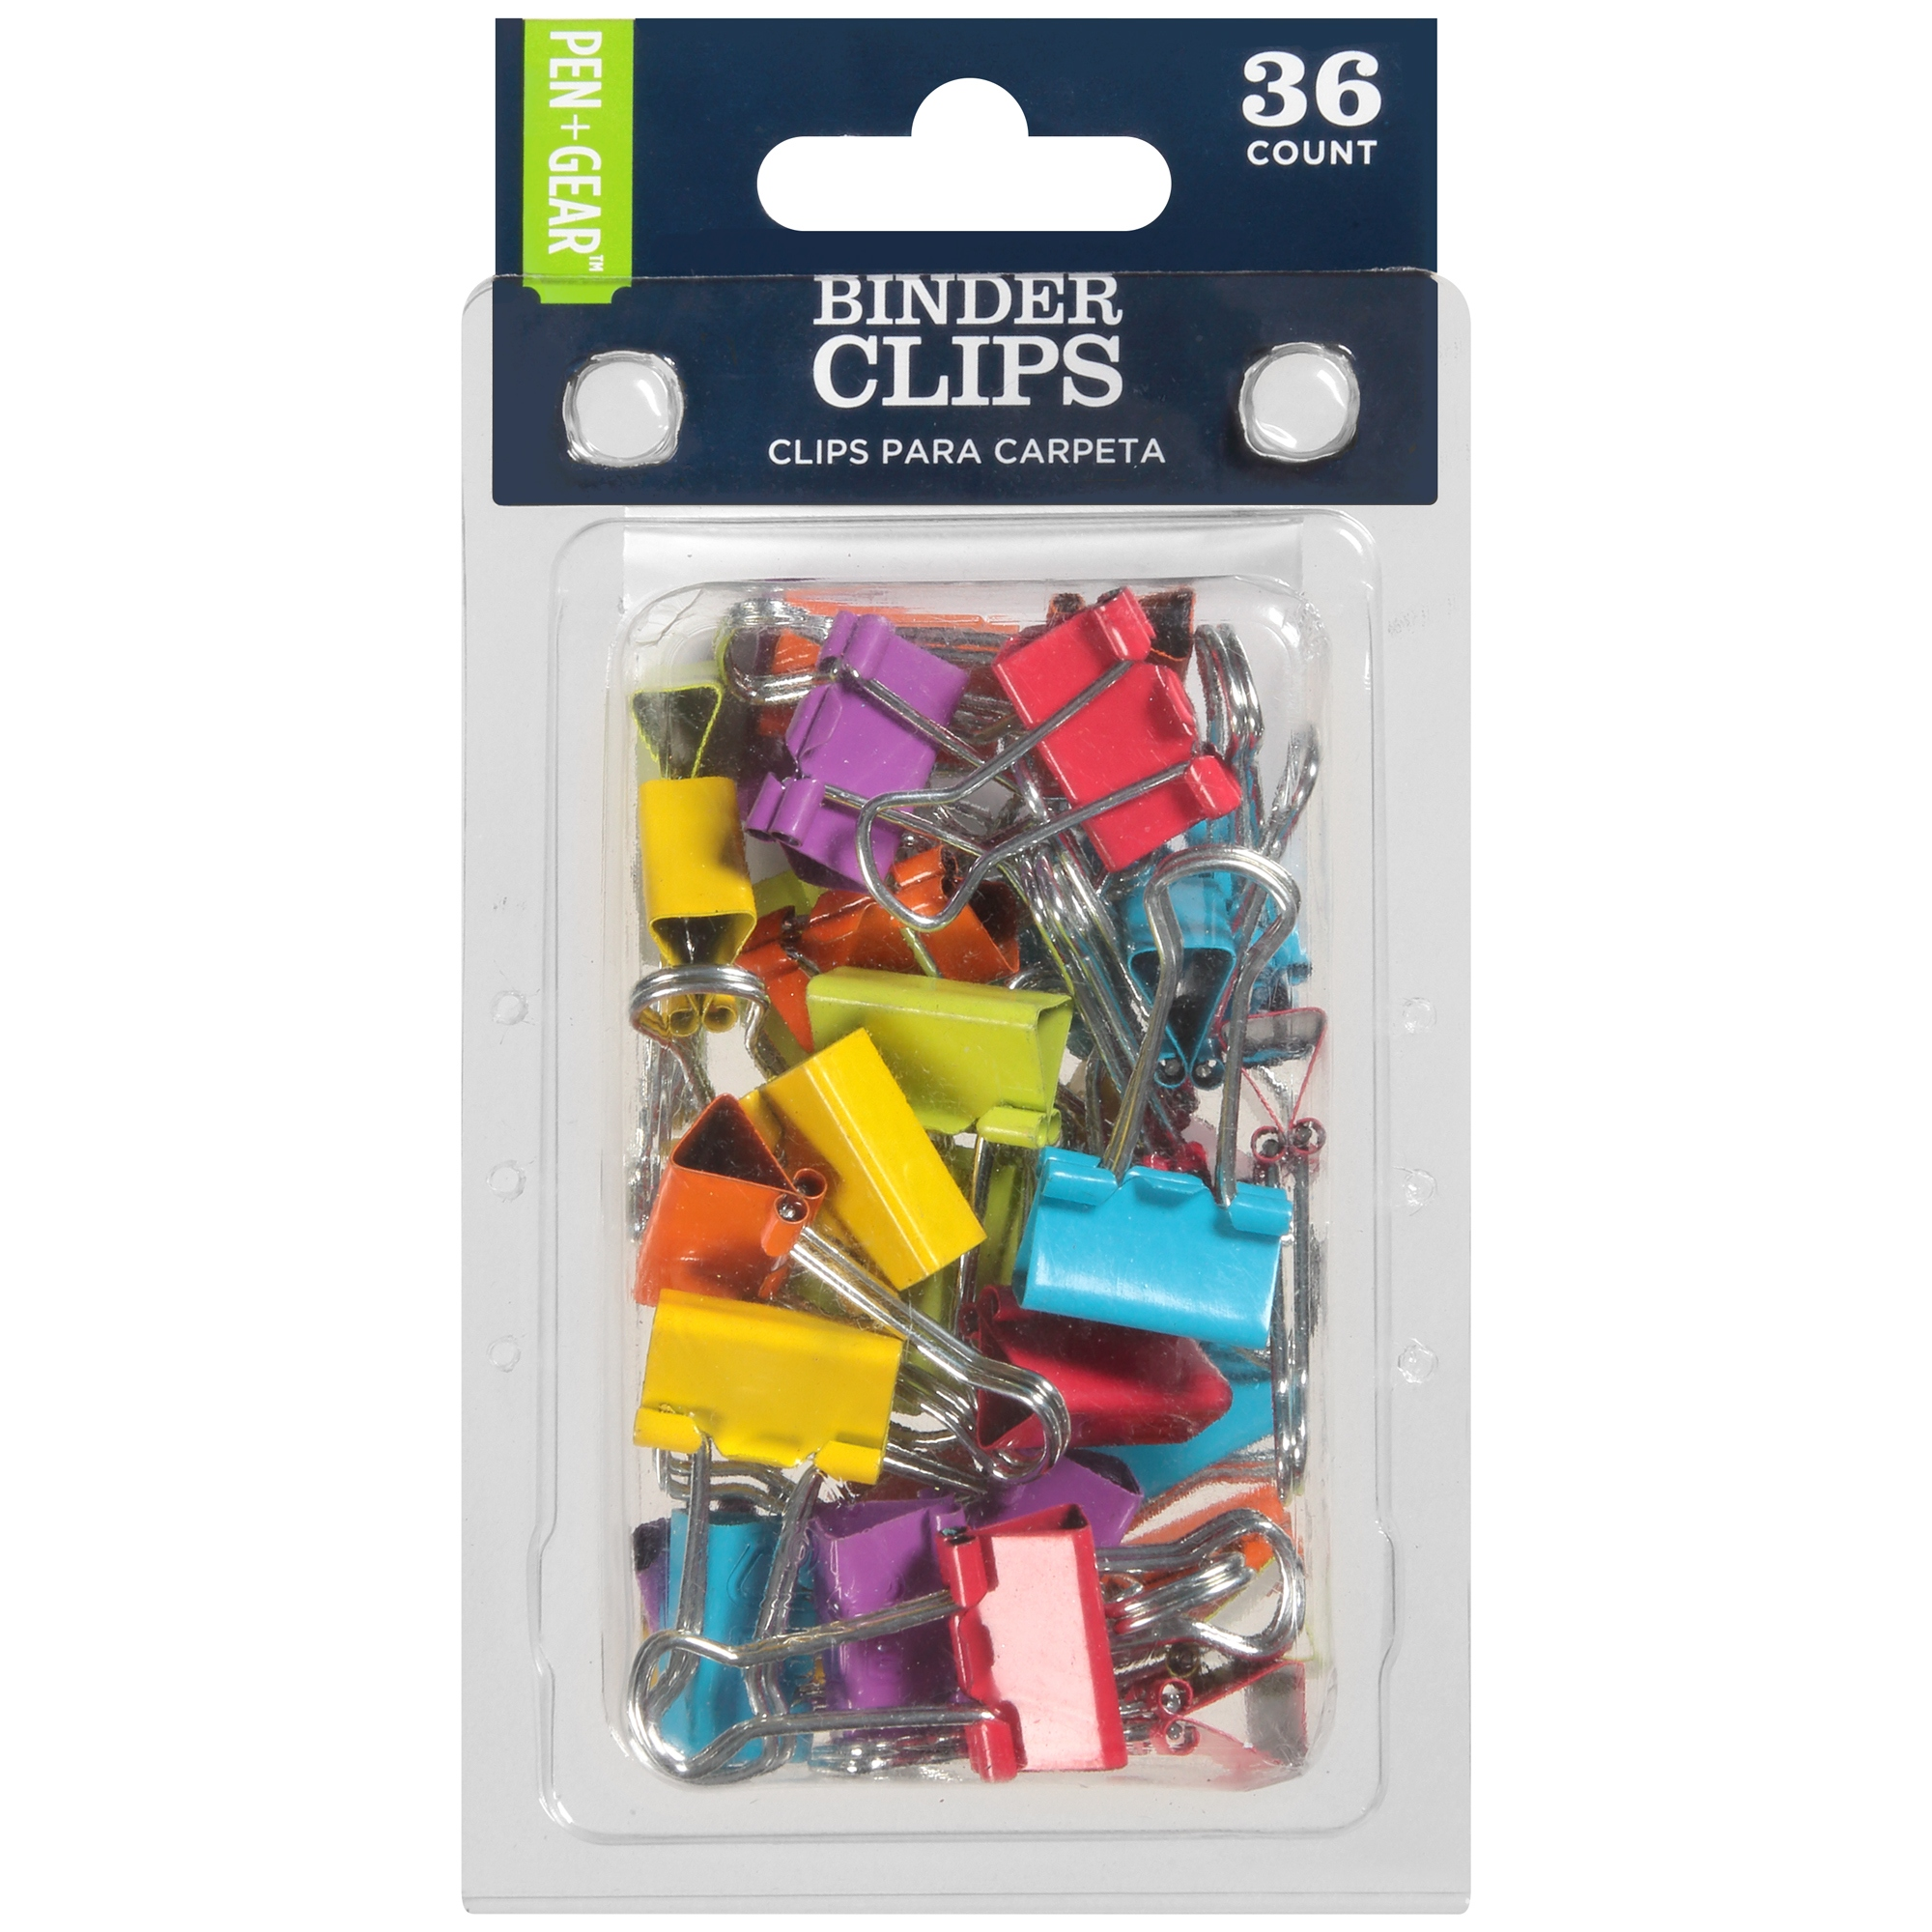 "PEN + GEAR™ 0.75"" Binder Clips, Assorted Colors, 36 count"